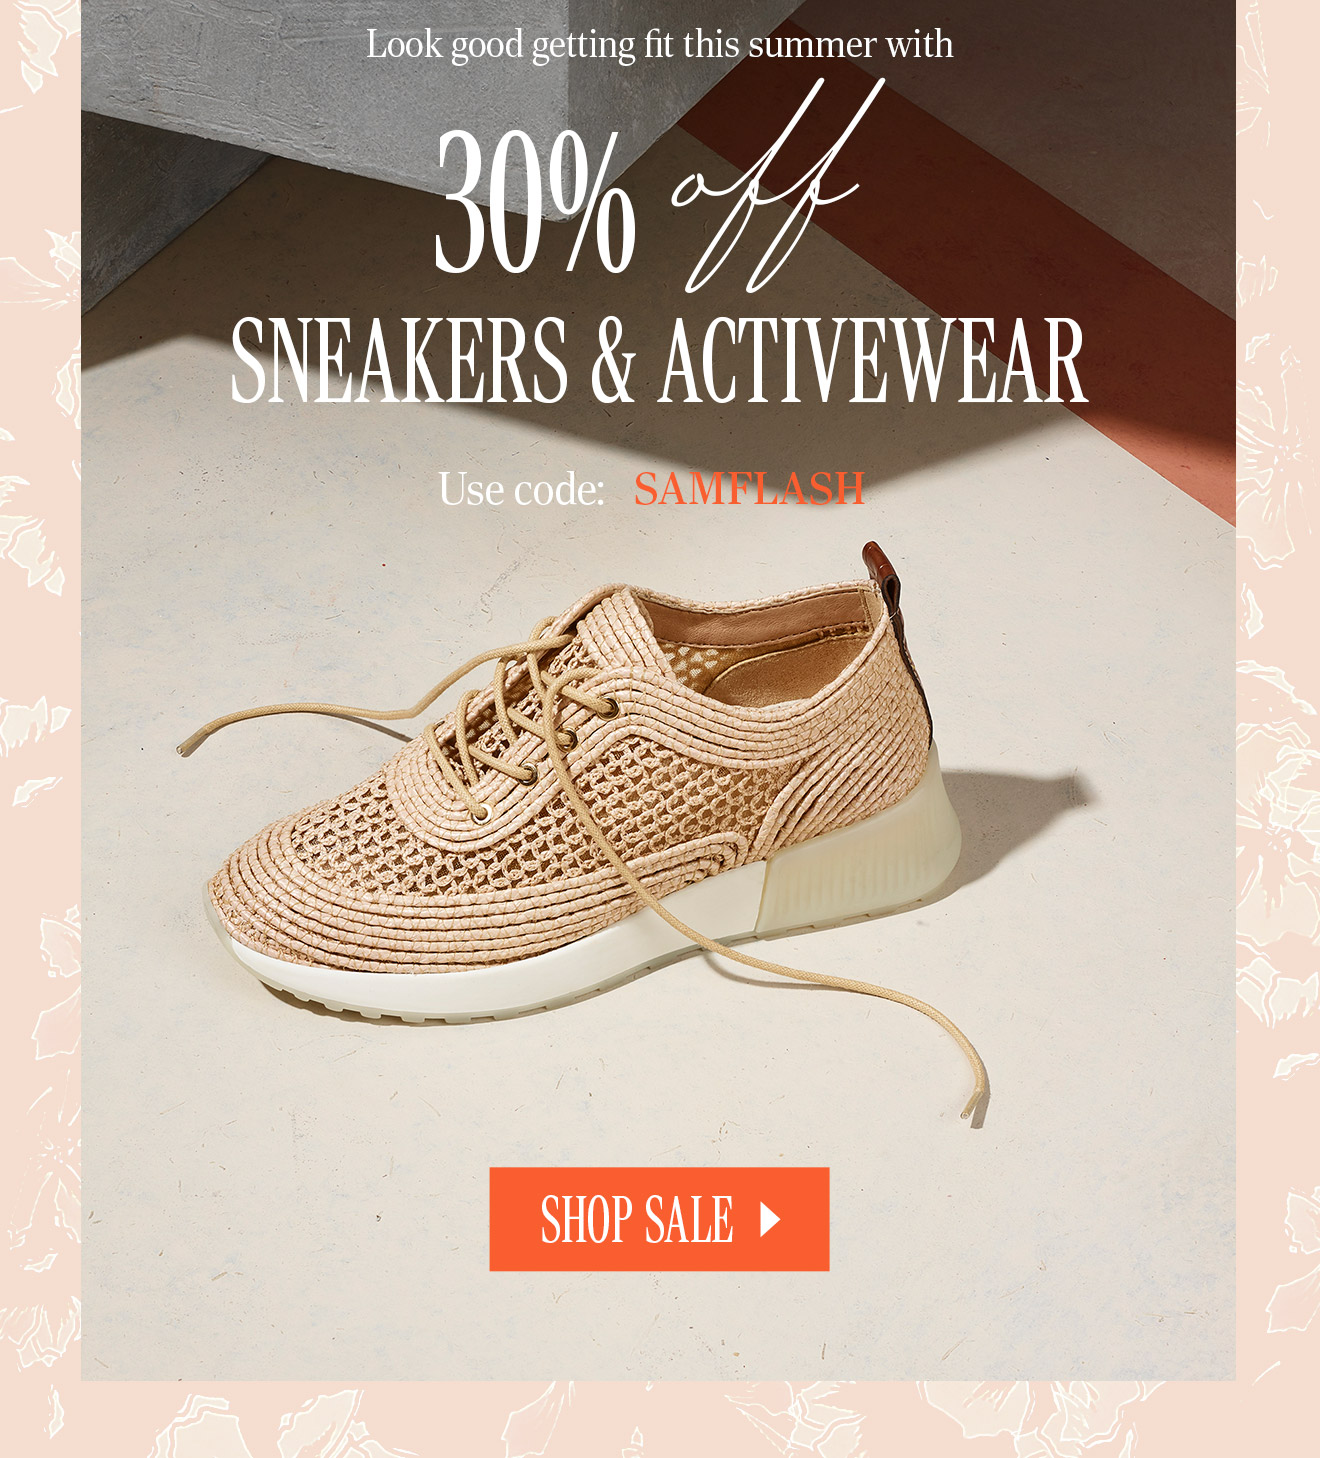 Look good getting fit this summer with 30% off SNEAKERS & ACTIVEWEAR. Use code: SAMFLASH. SHOP SALE.